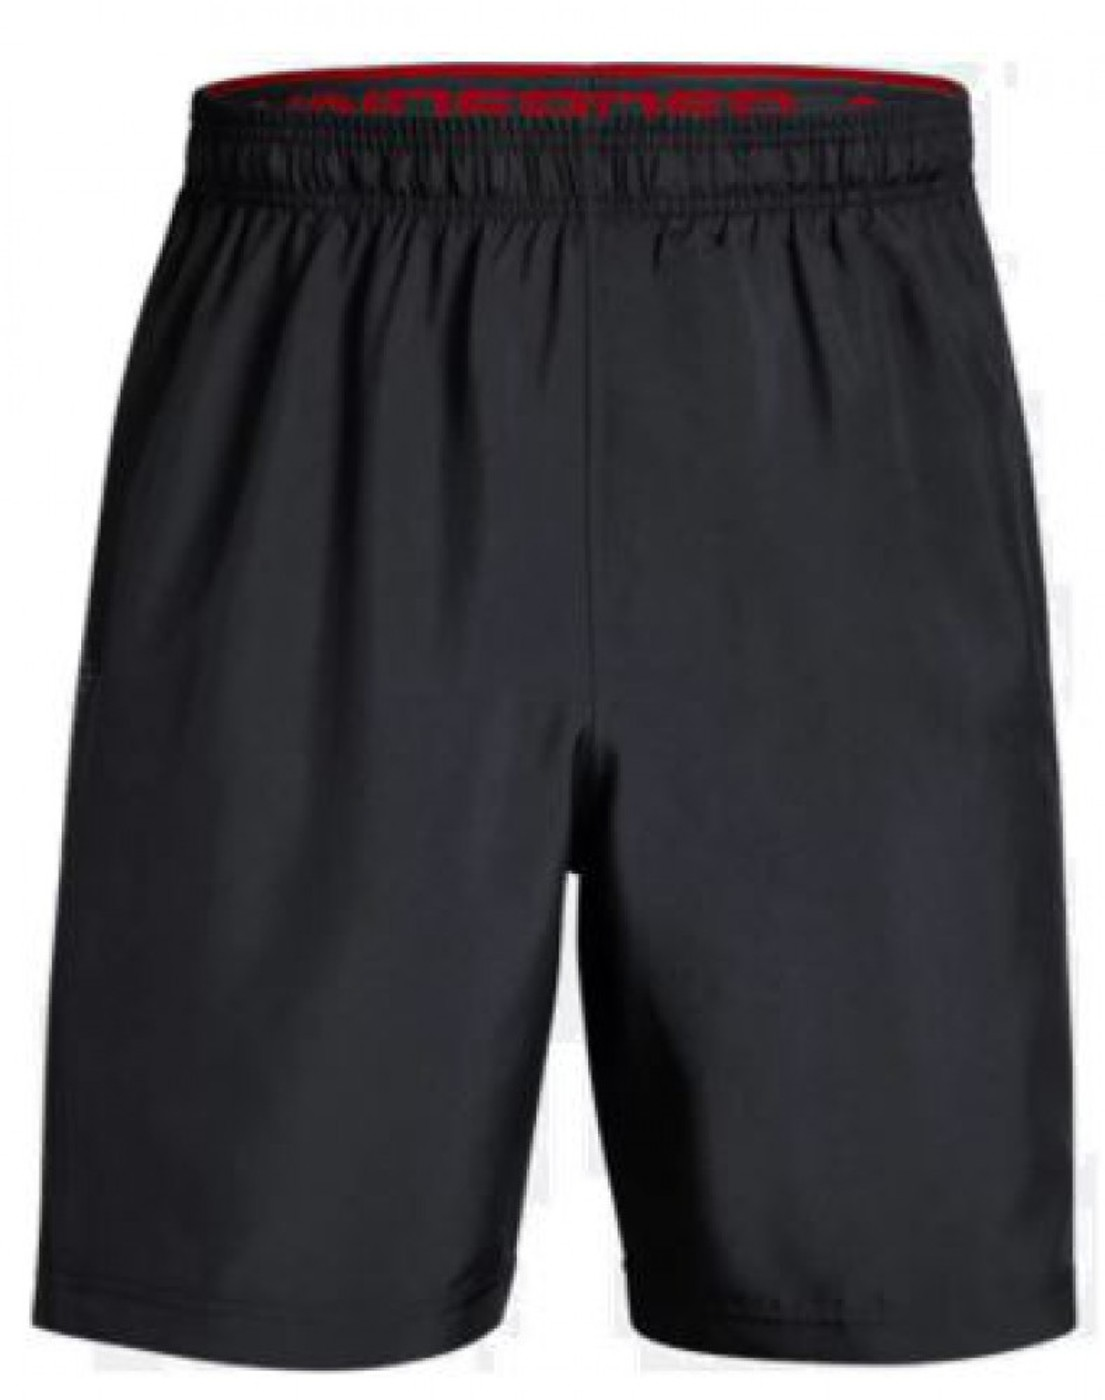 UNDER ARMOUR UA Woven Graphic Shorts - Herren